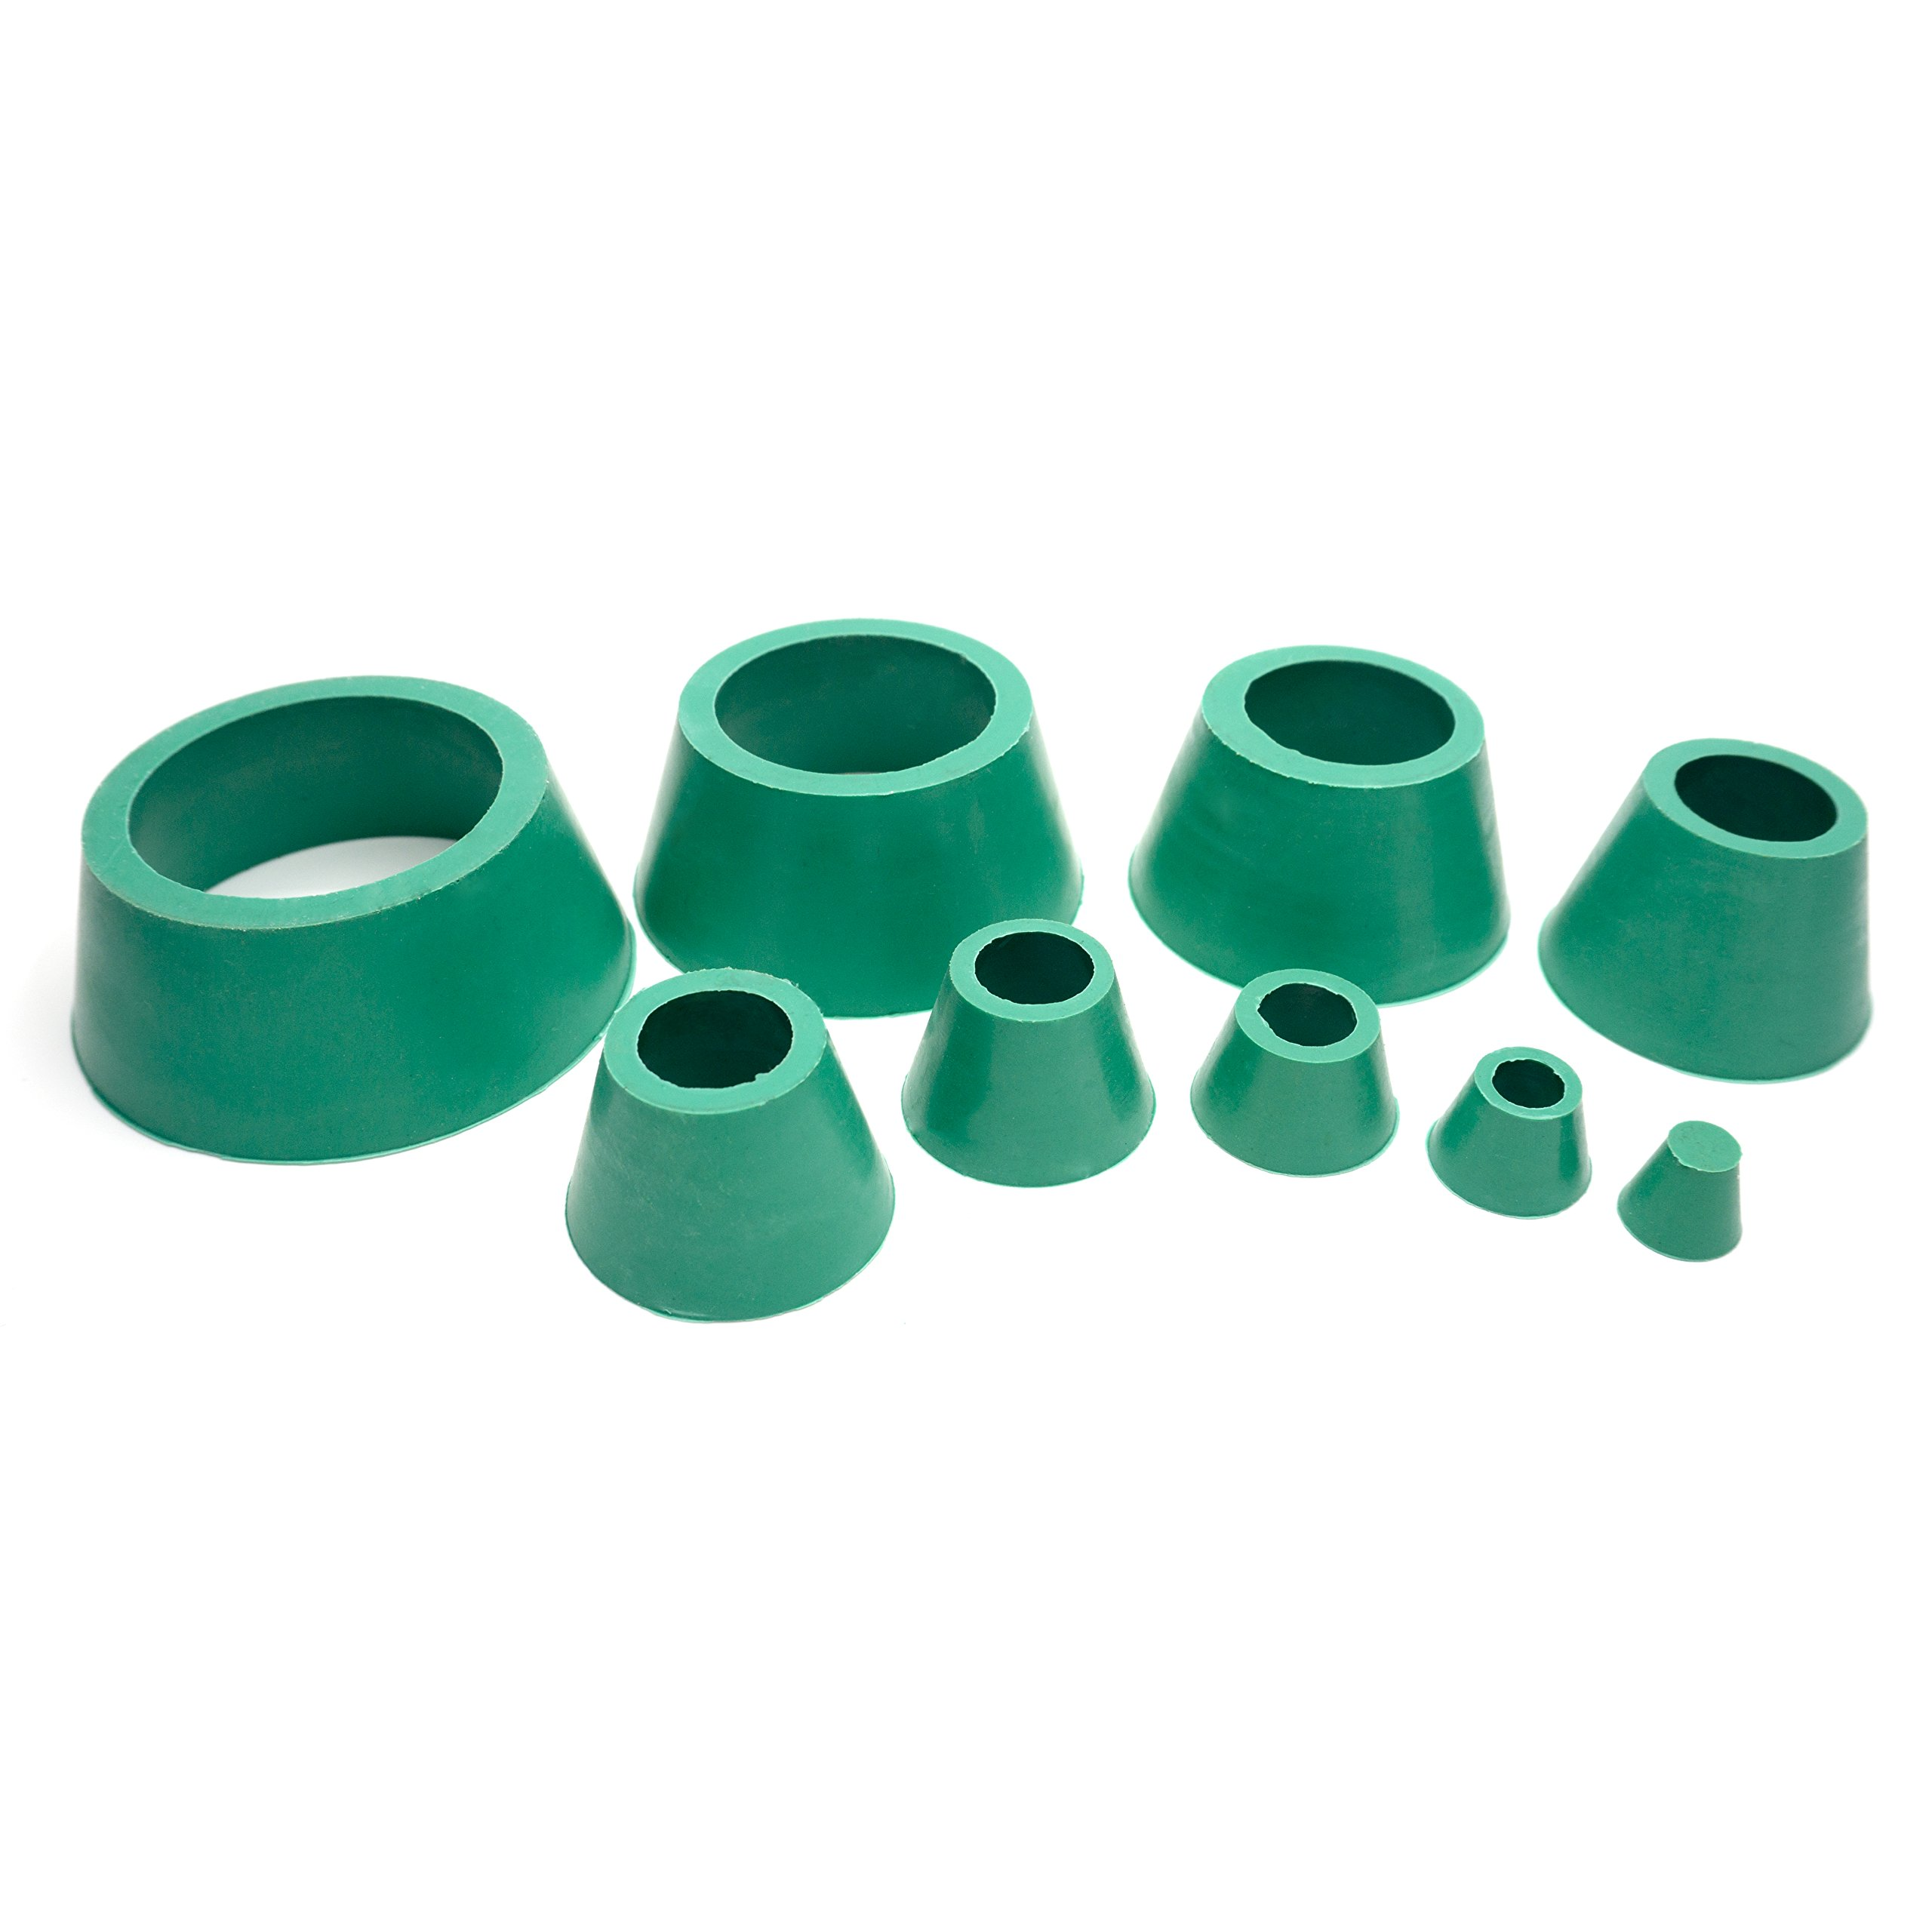 Soccerene Filter Adapter Cones Set, Buchner Funnel Flask Adapter Set, Tapered Collar Green, Good Elasticity Smooth Surface Hardwearing, Pack of 9